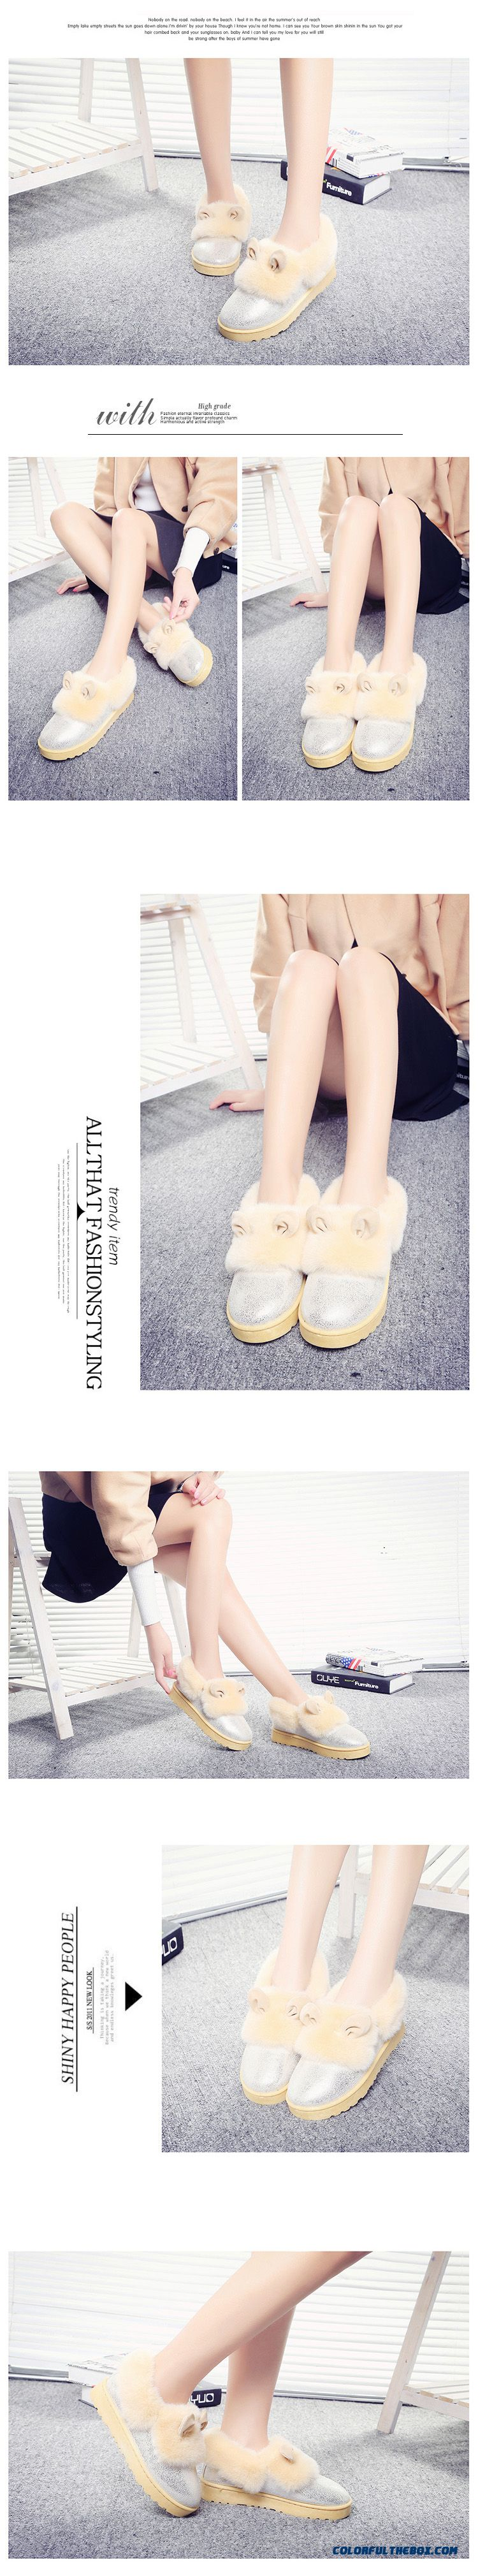 New Winter Thick Warm Women Shoes Heavy-bottomed Flat Boots With Rabbit Ears - detail images